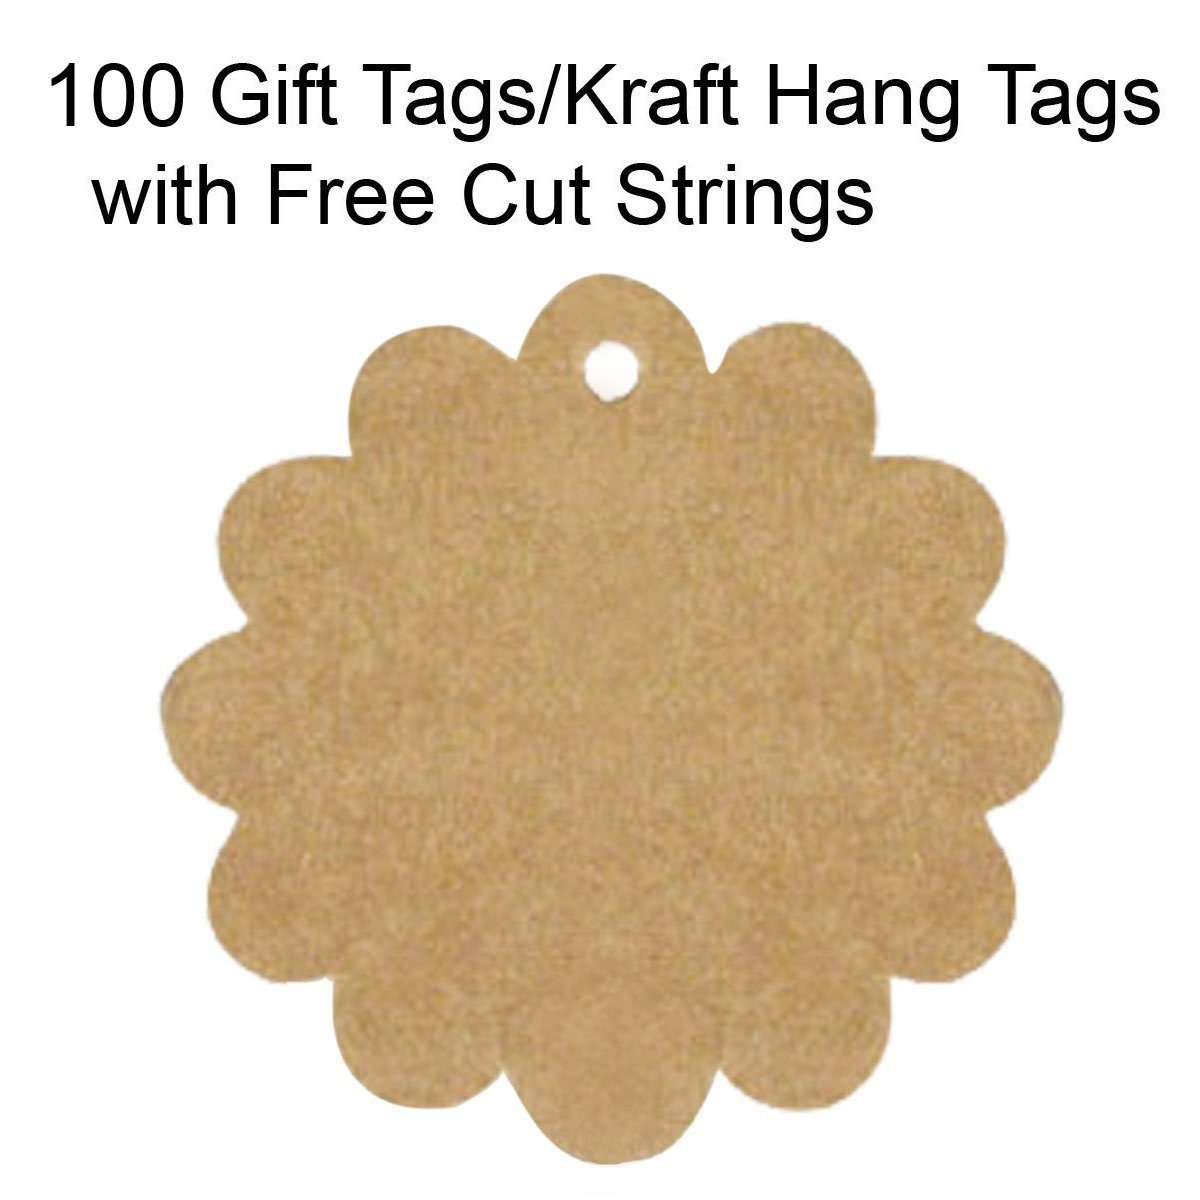 Wrapables 100 Gift Tags/Kraft Hang Tags with Free Cut Strings - Flower